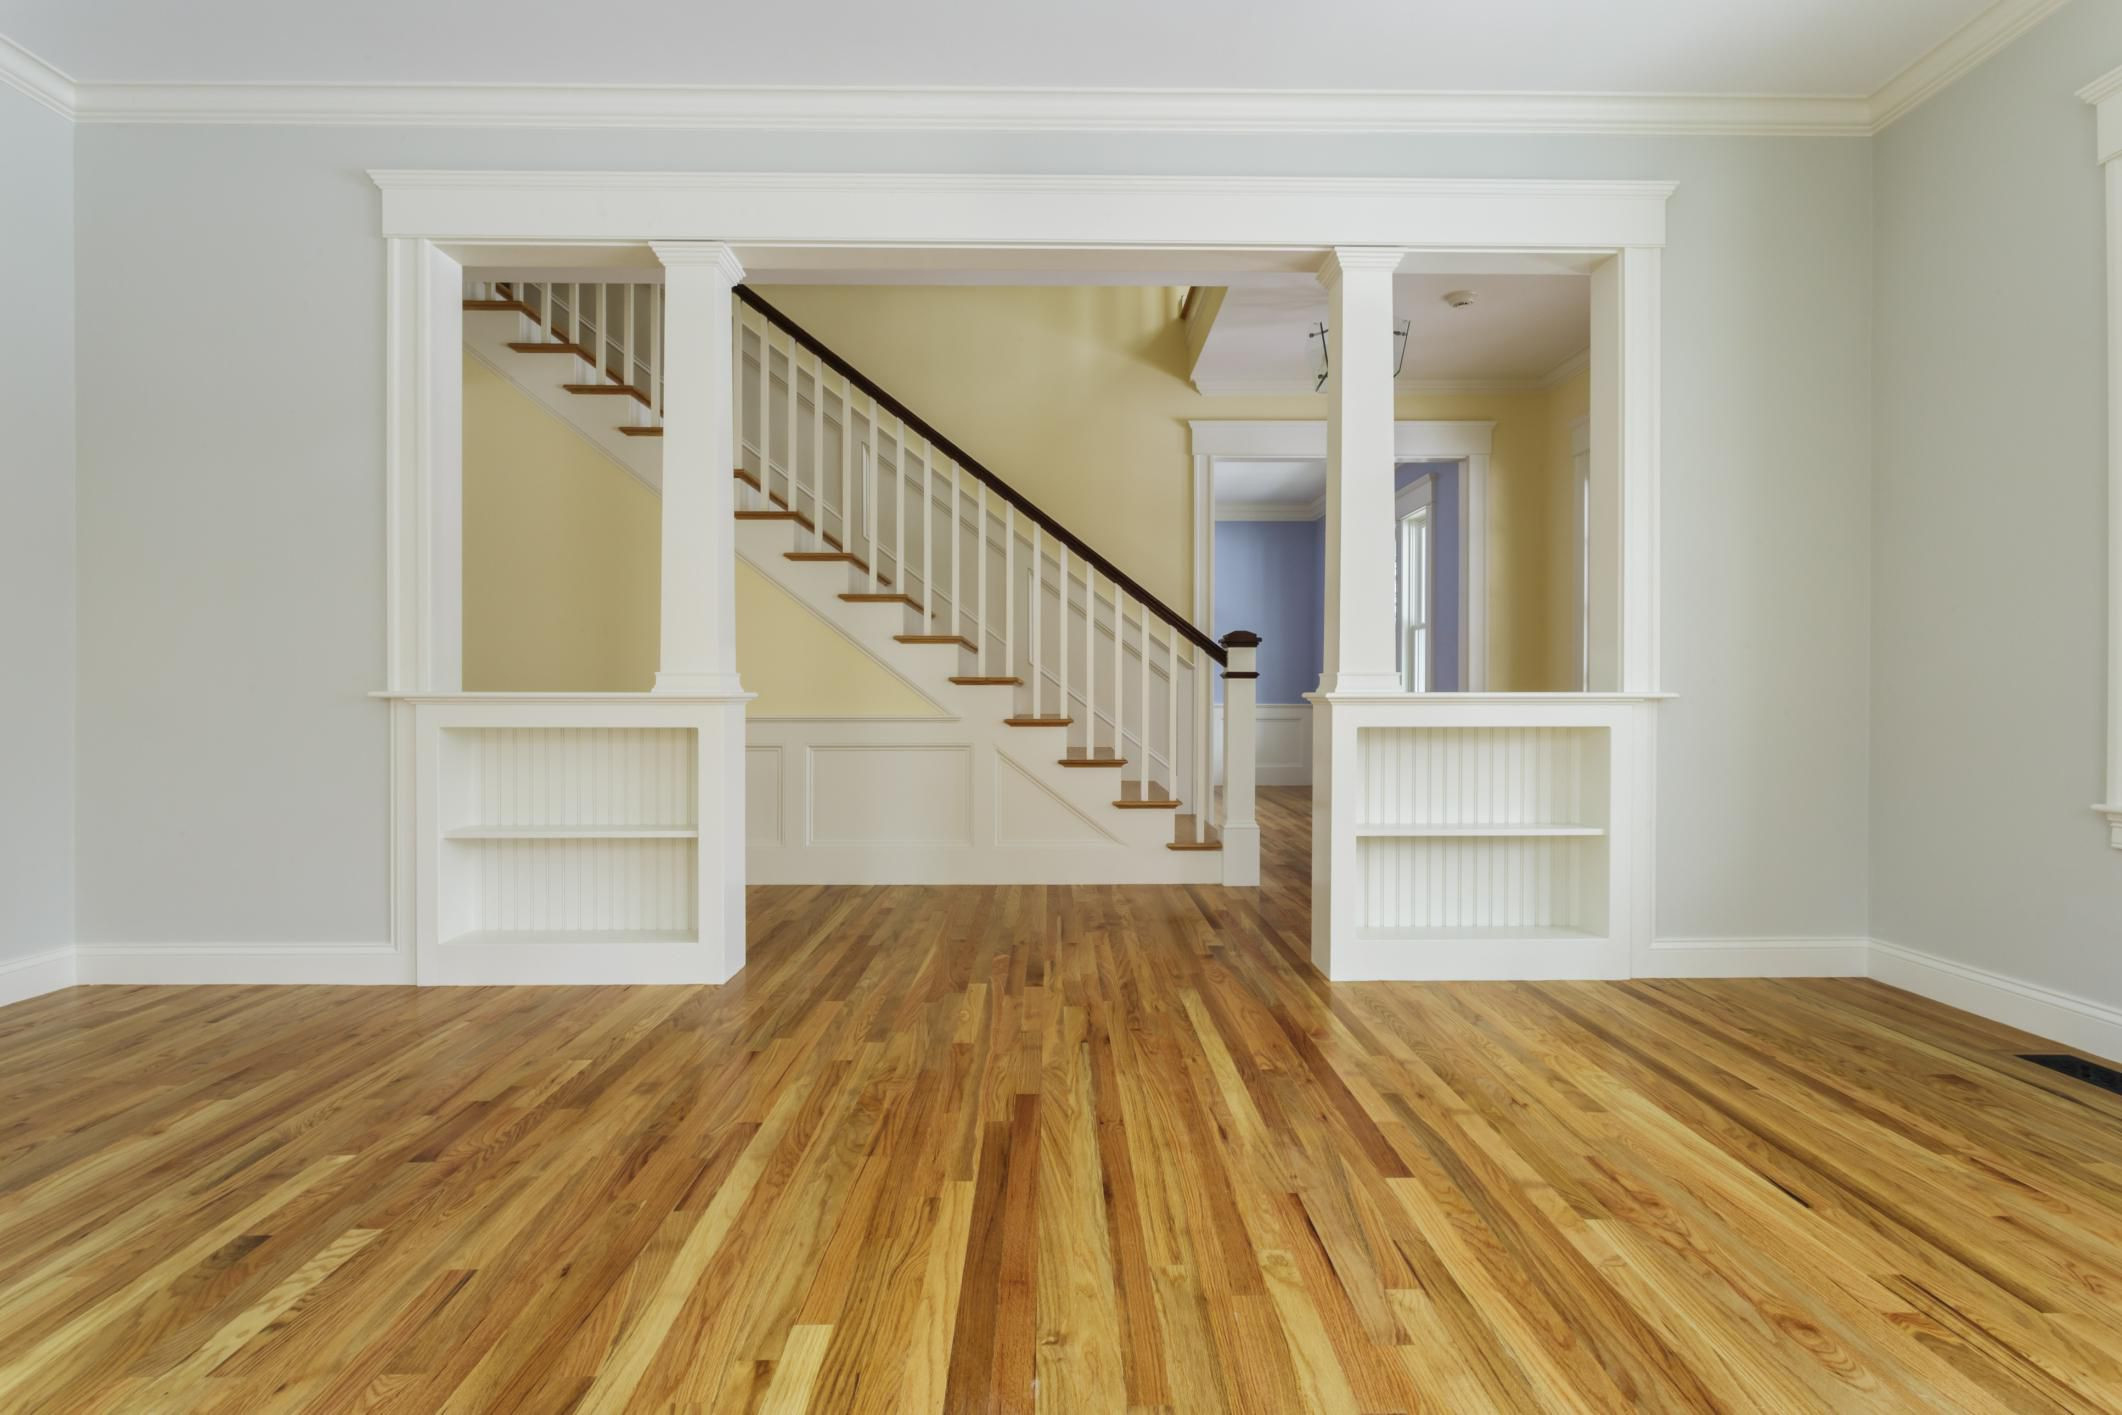 best hardwood floor options of guide to solid hardwood floors inside 168686571 56a49f213df78cf772834e24